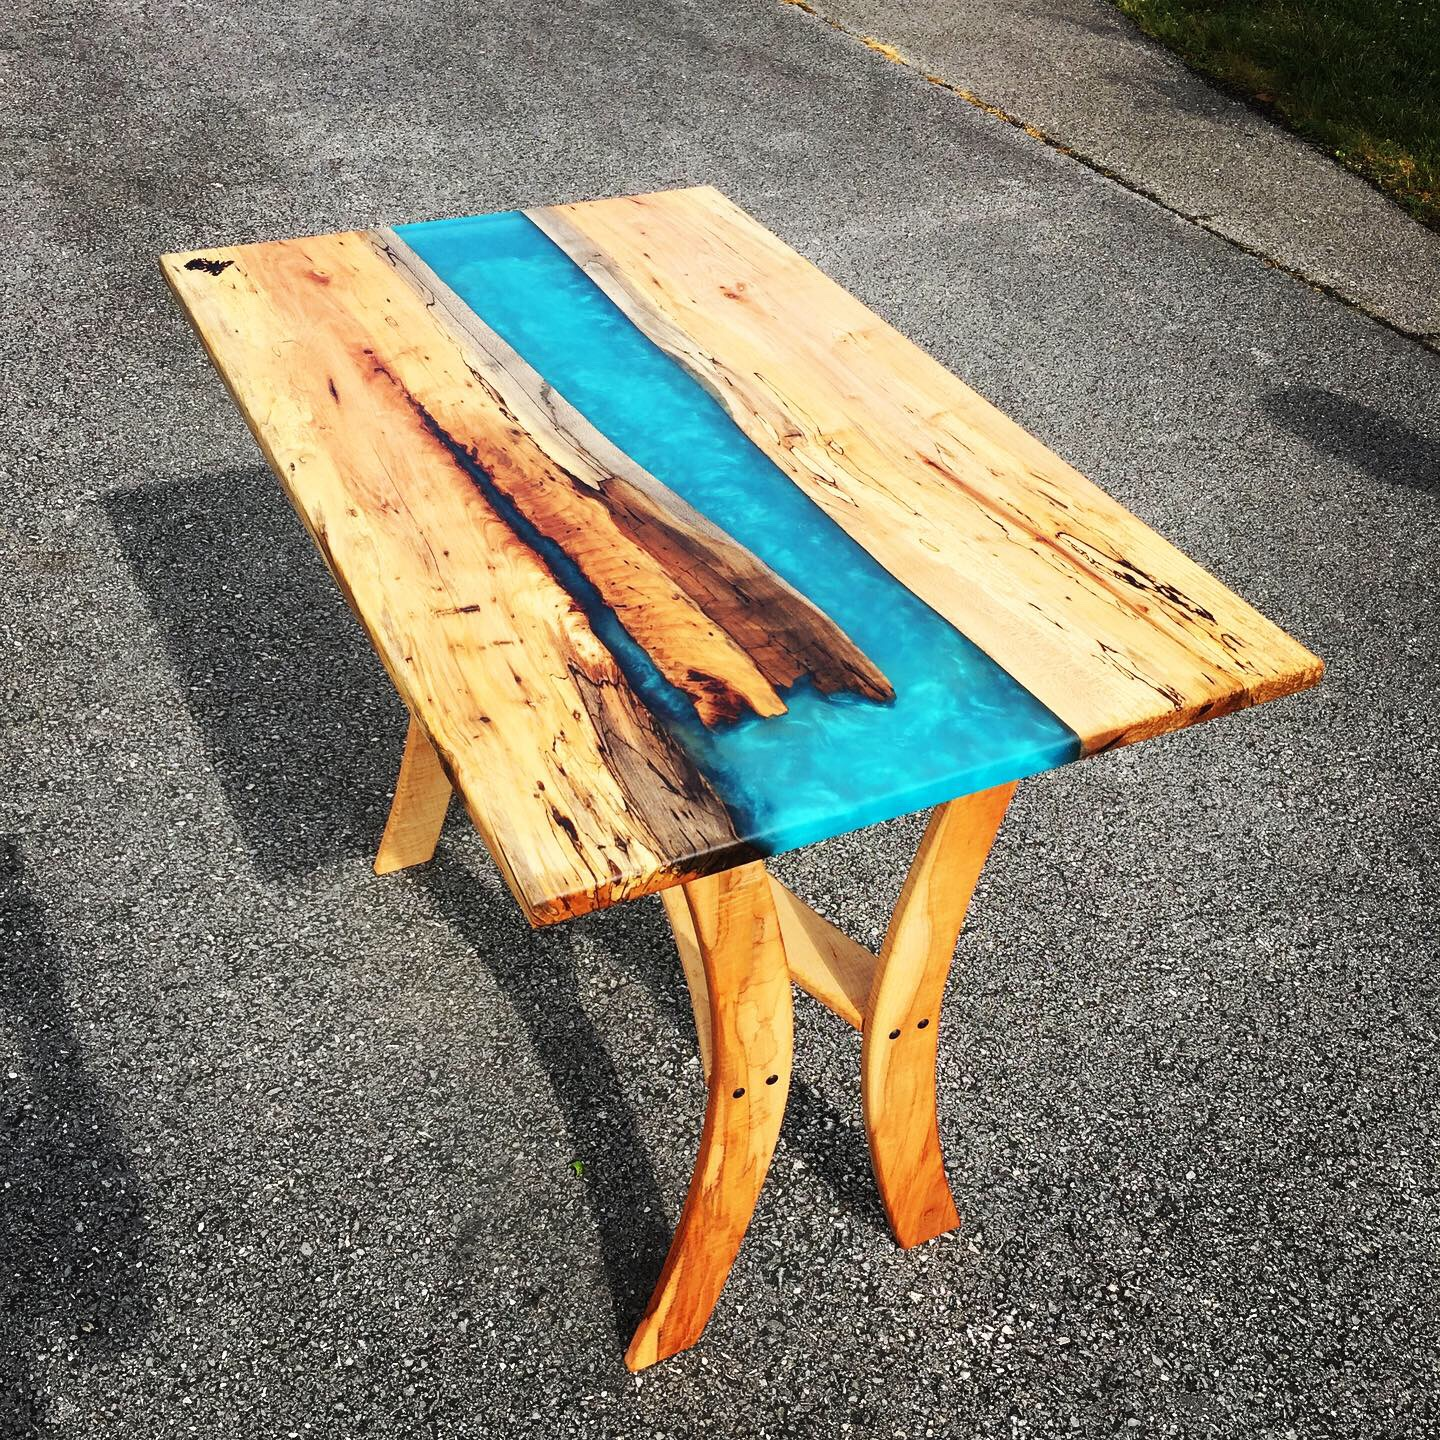 Maple reclaim. - Great little loft style table. Decayed and spalted maple top using epoxy to stabilize with high figured curly maple base.Truly, one of a kind.